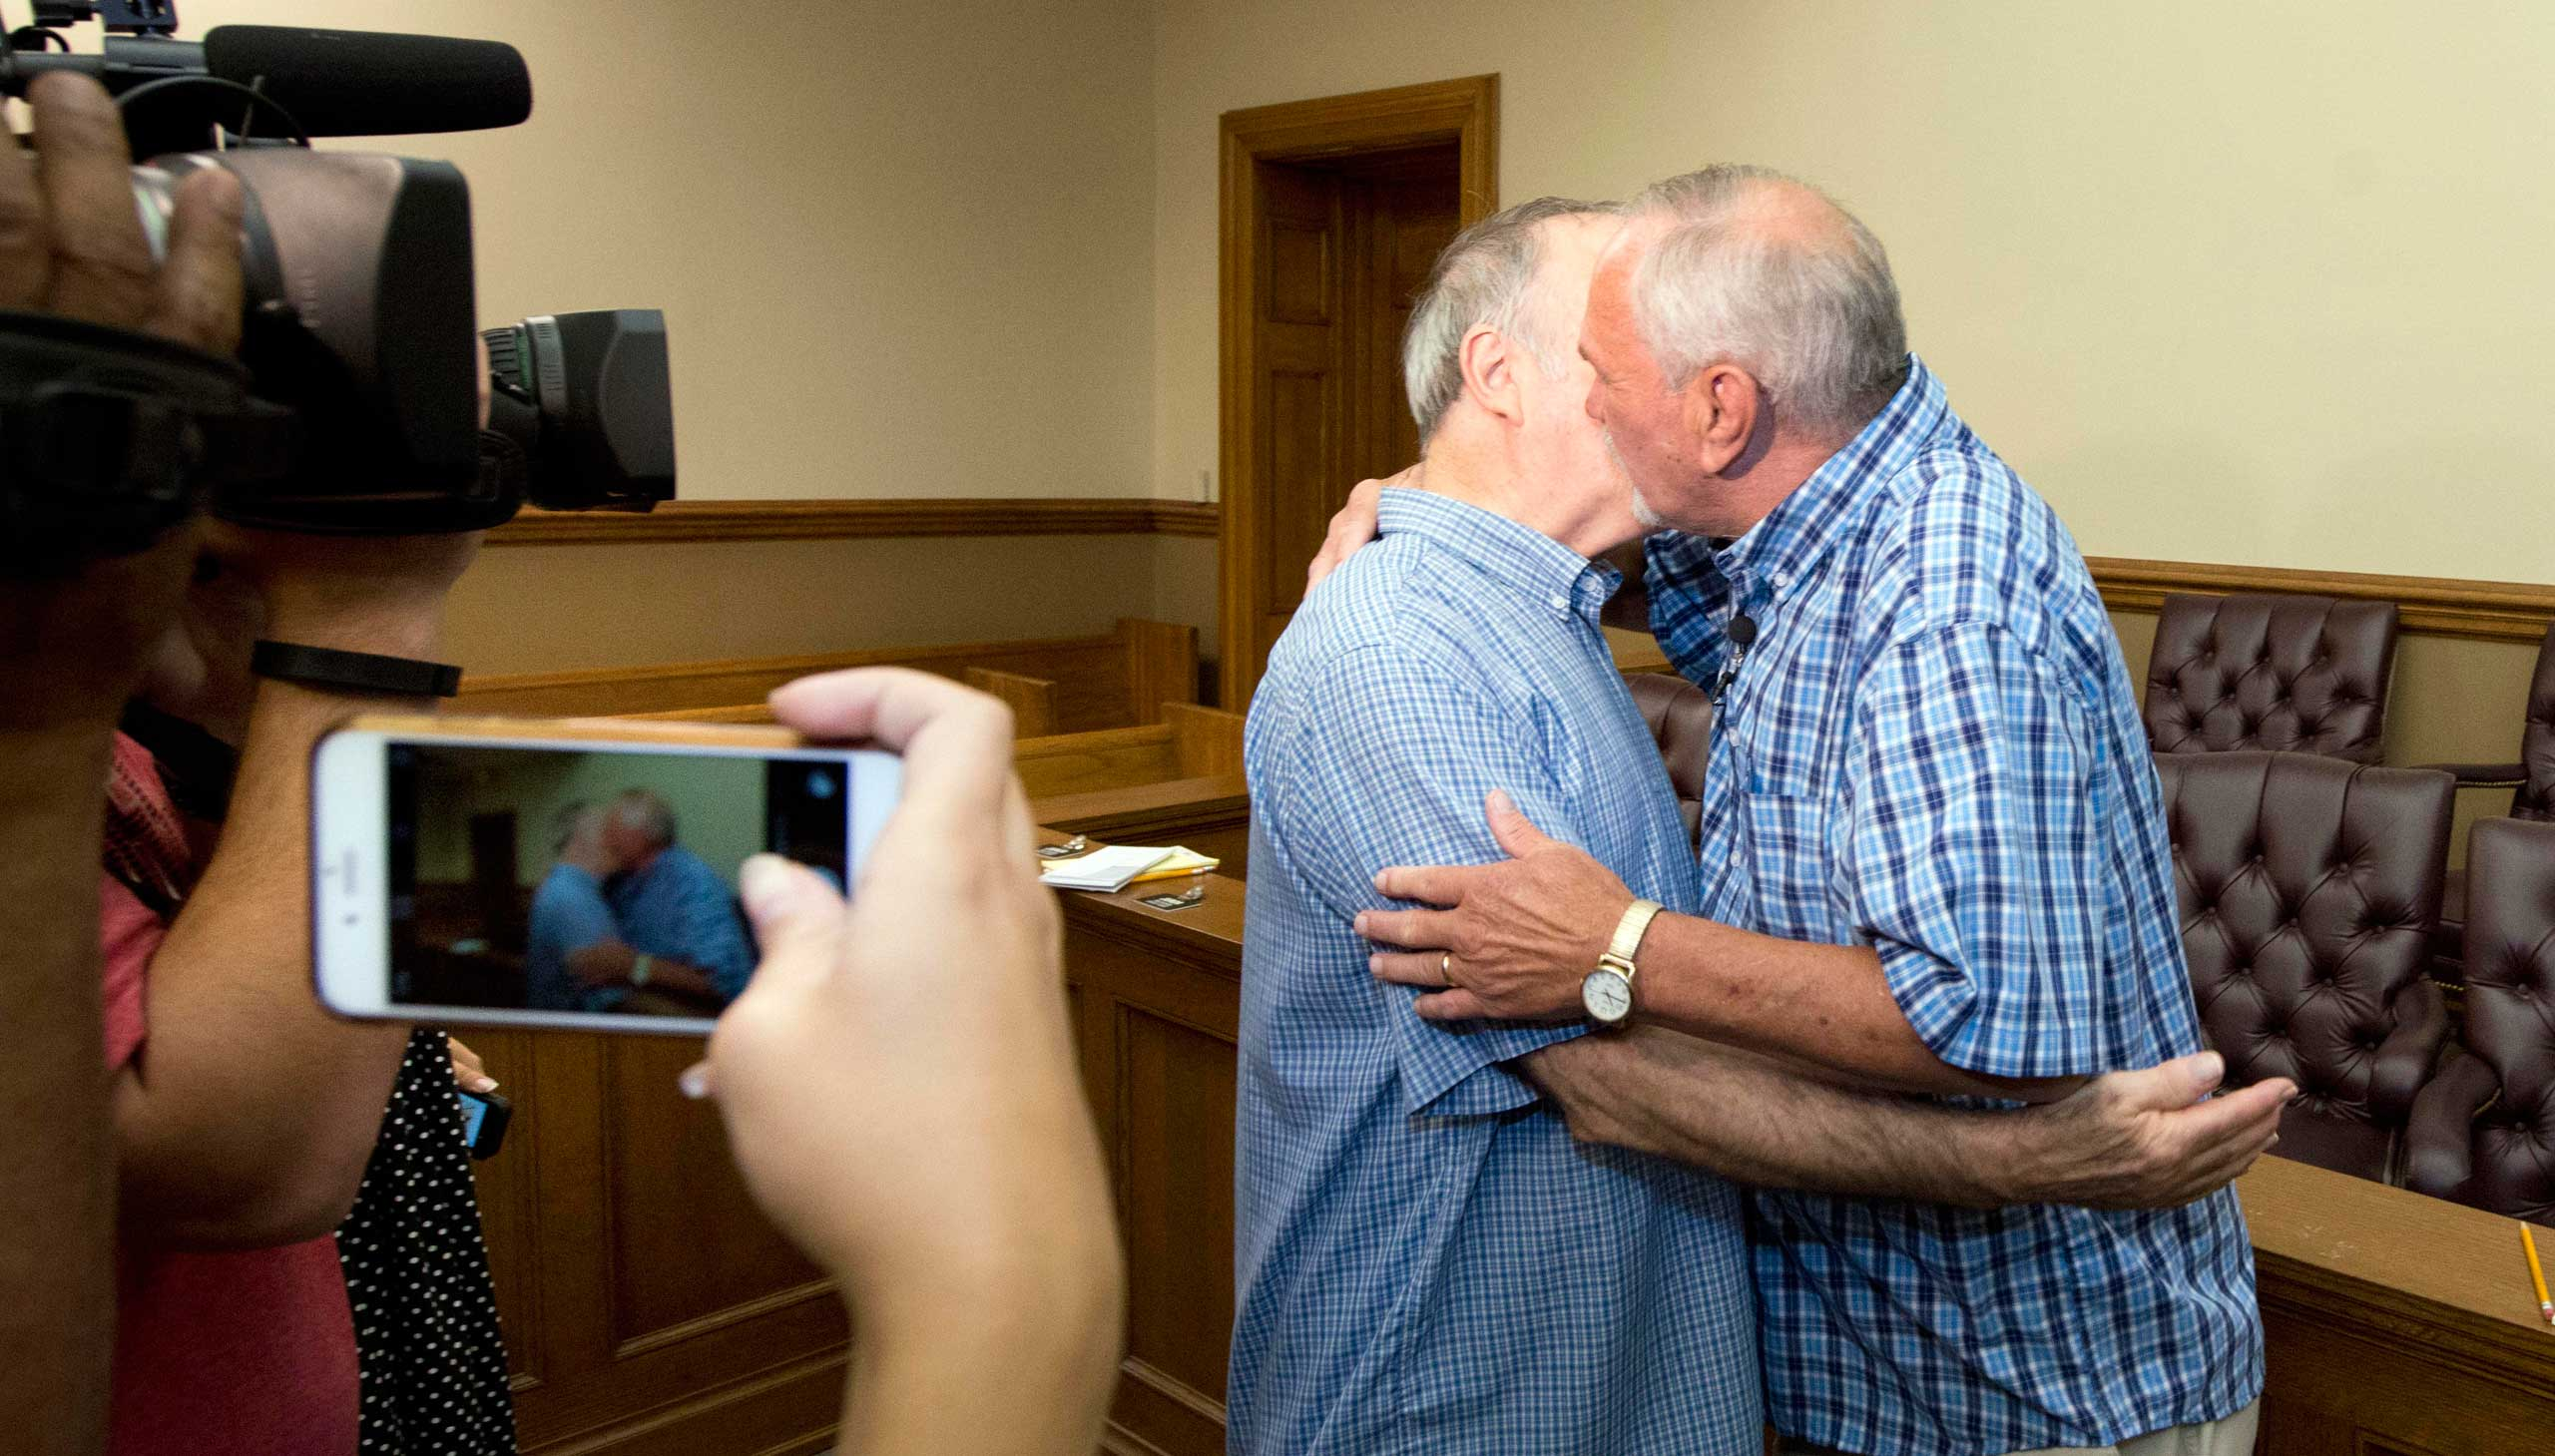 Tony Chiaro, left, and Earnie Matheson, right, embrace after exchanging vows in the first same sex marriage performed in Pulaski County, in Little Rock, Ark. on June 26, 2015.